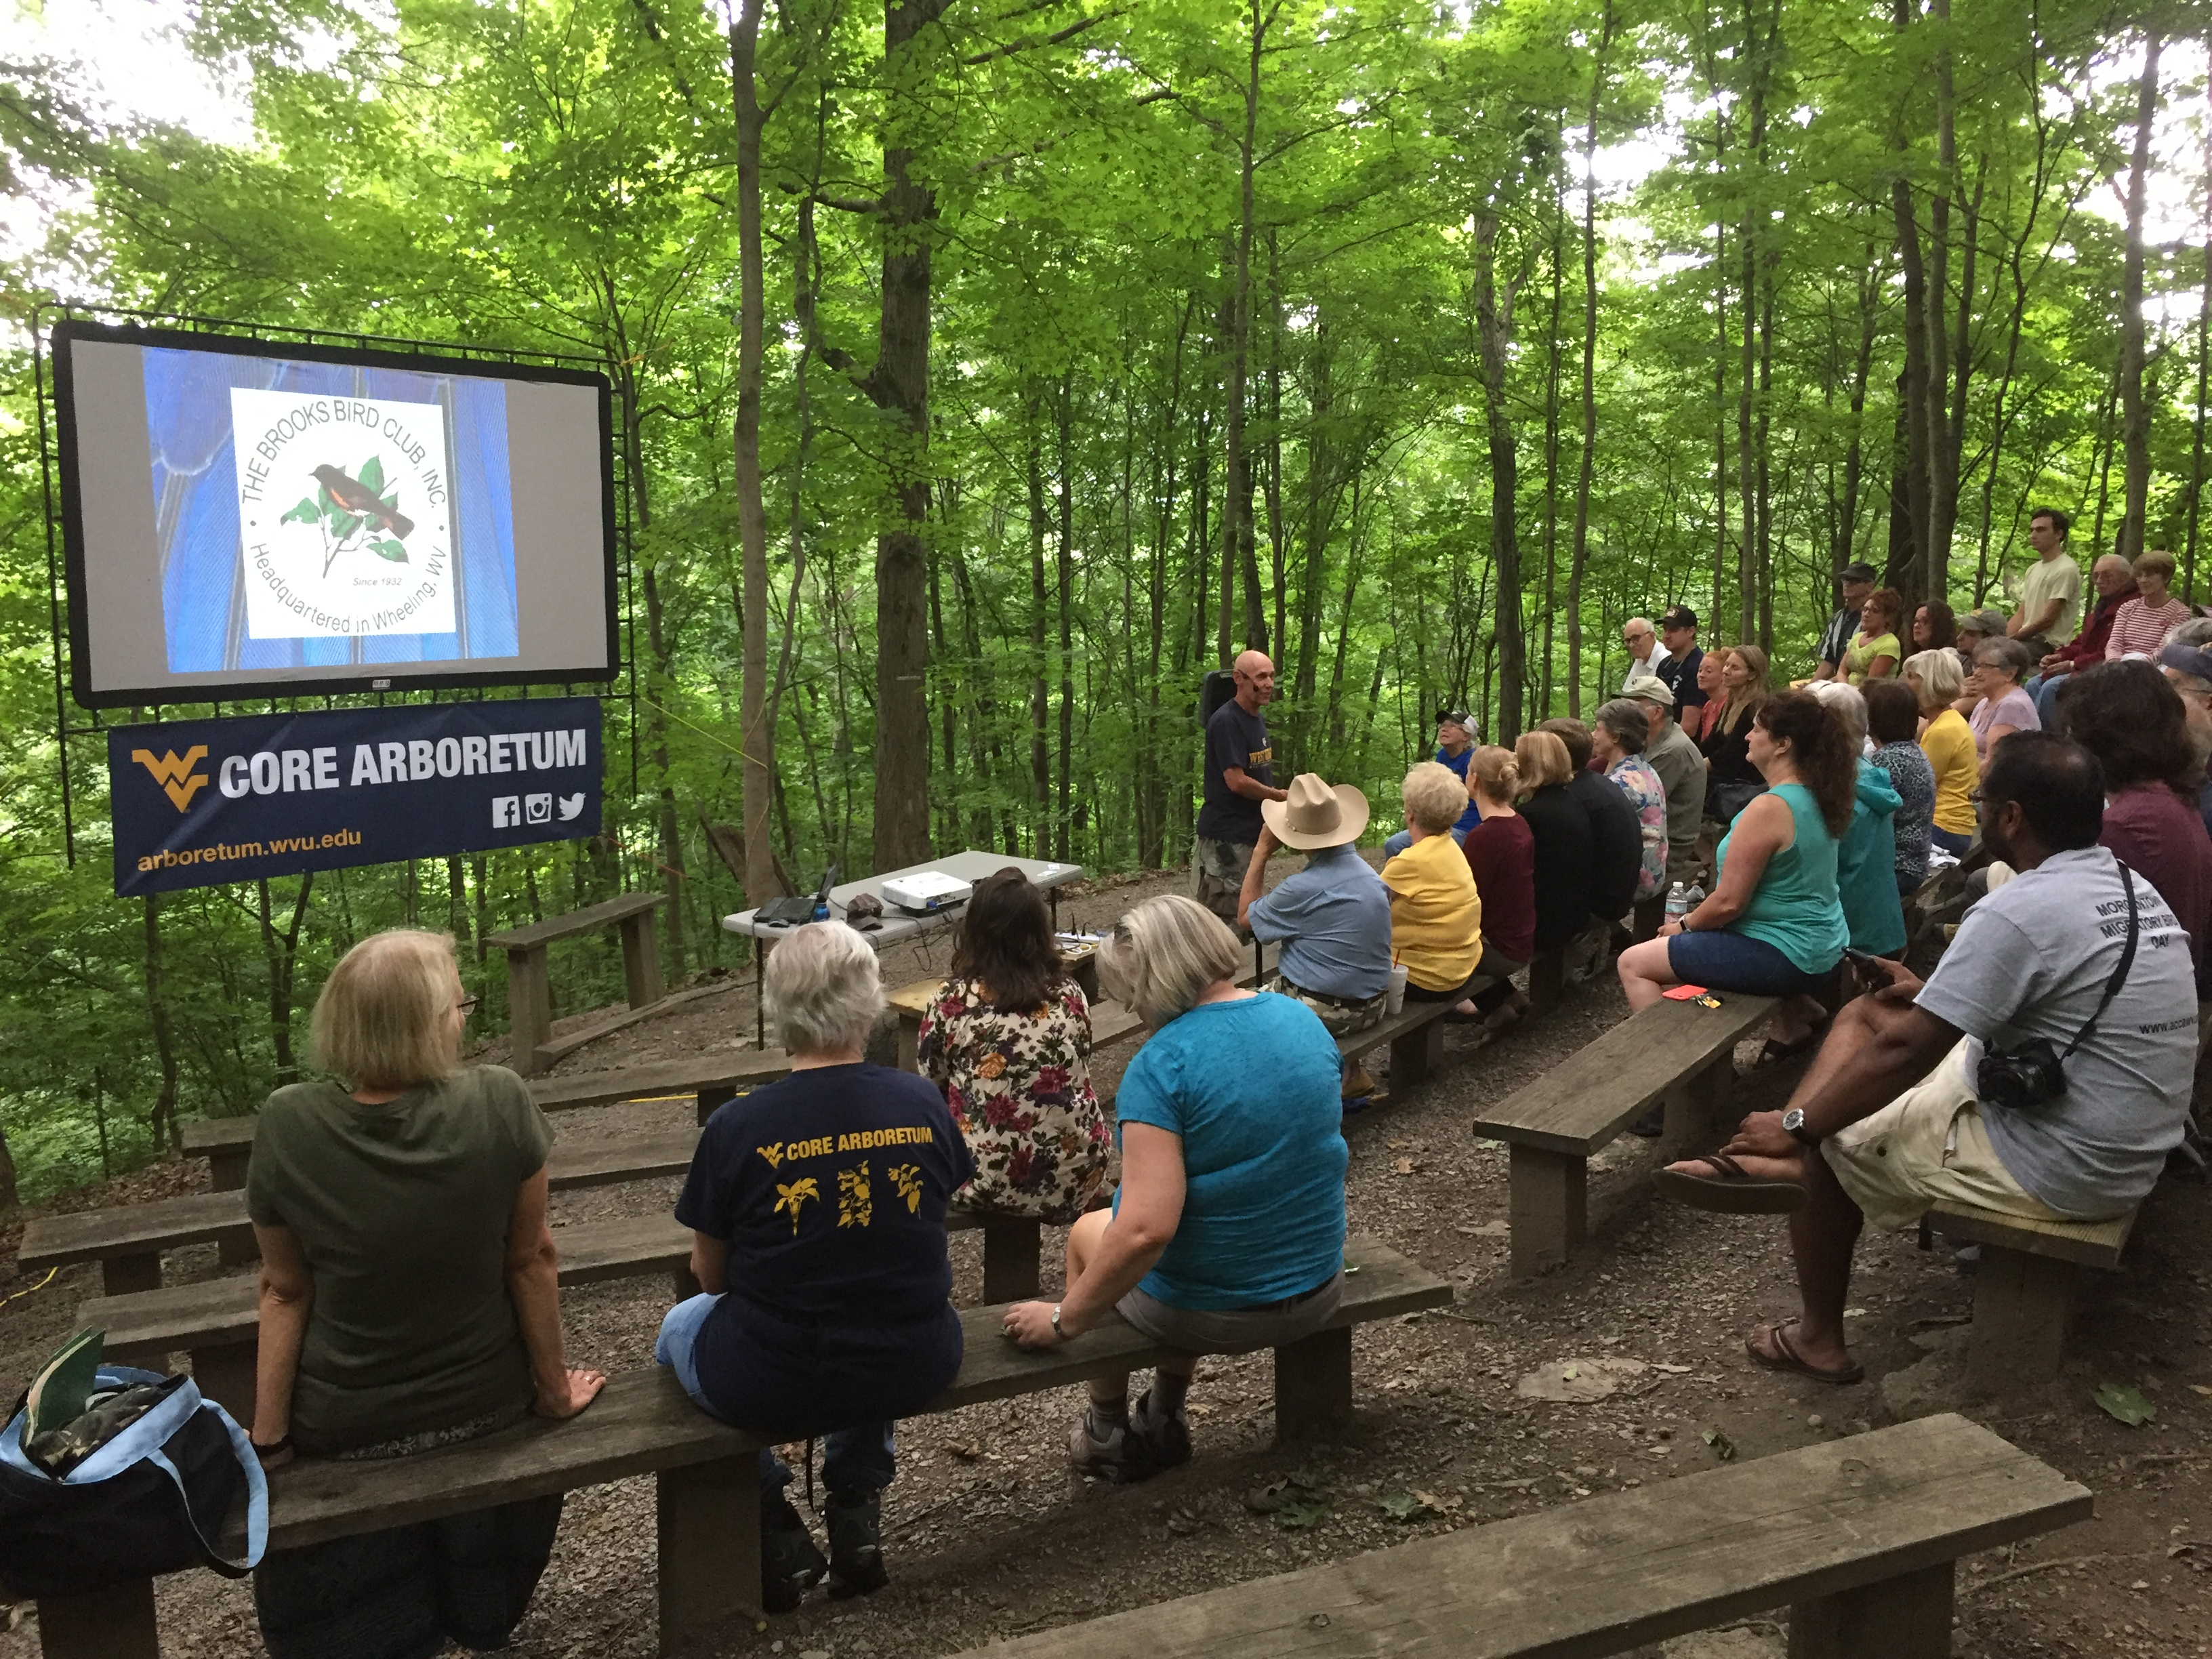 West Virginia University's Core Arboretum will bring local and regional nature experts to campus this summer in its annual Nature Connection Series.